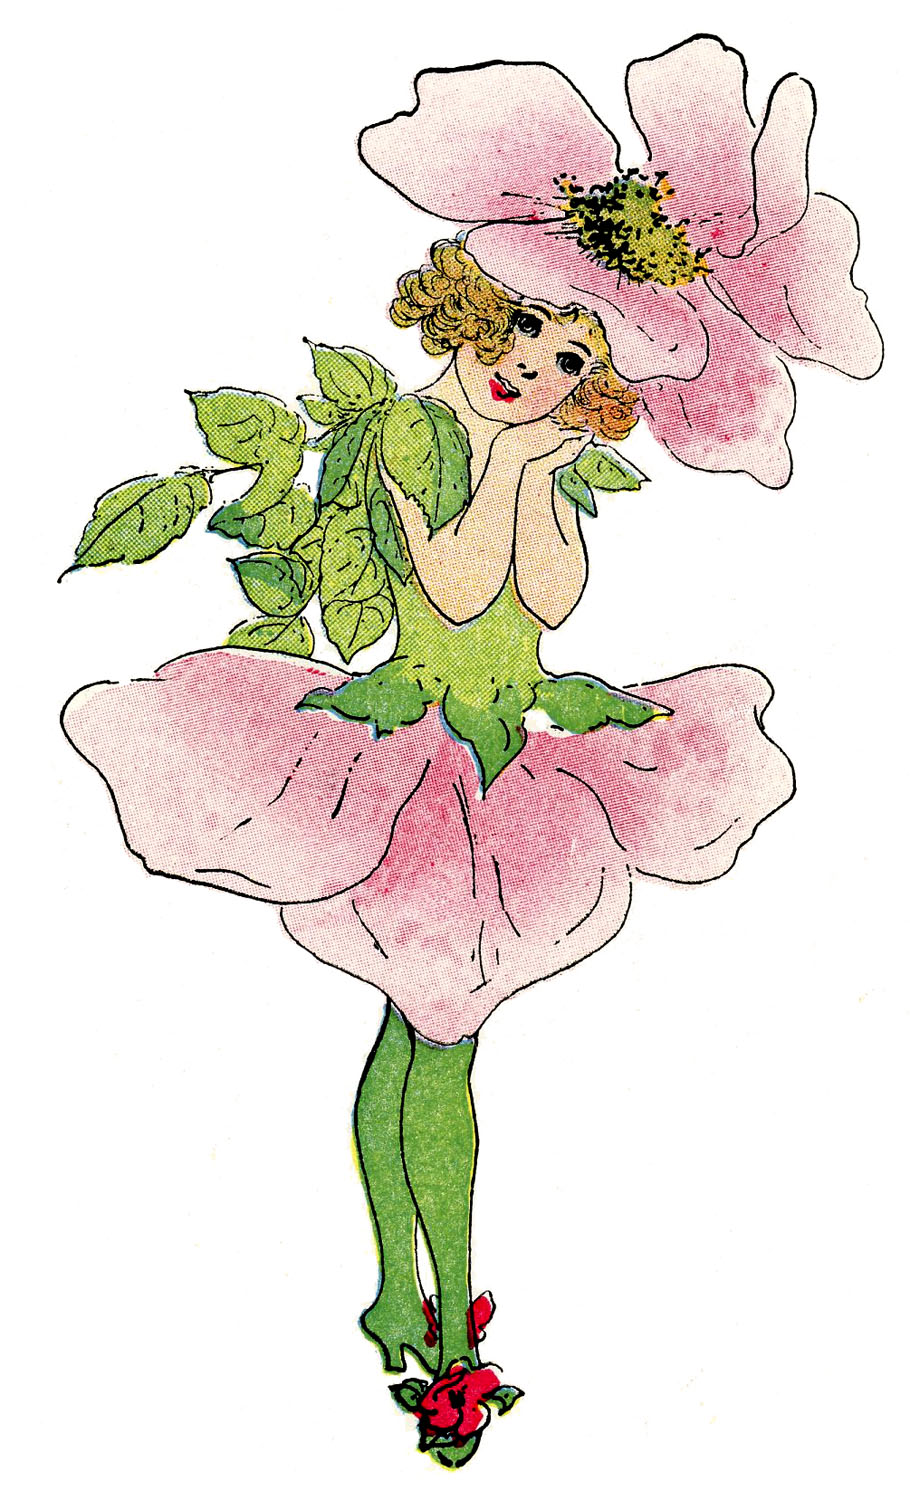 Vintage Fairy Image - Rose Flower Girl